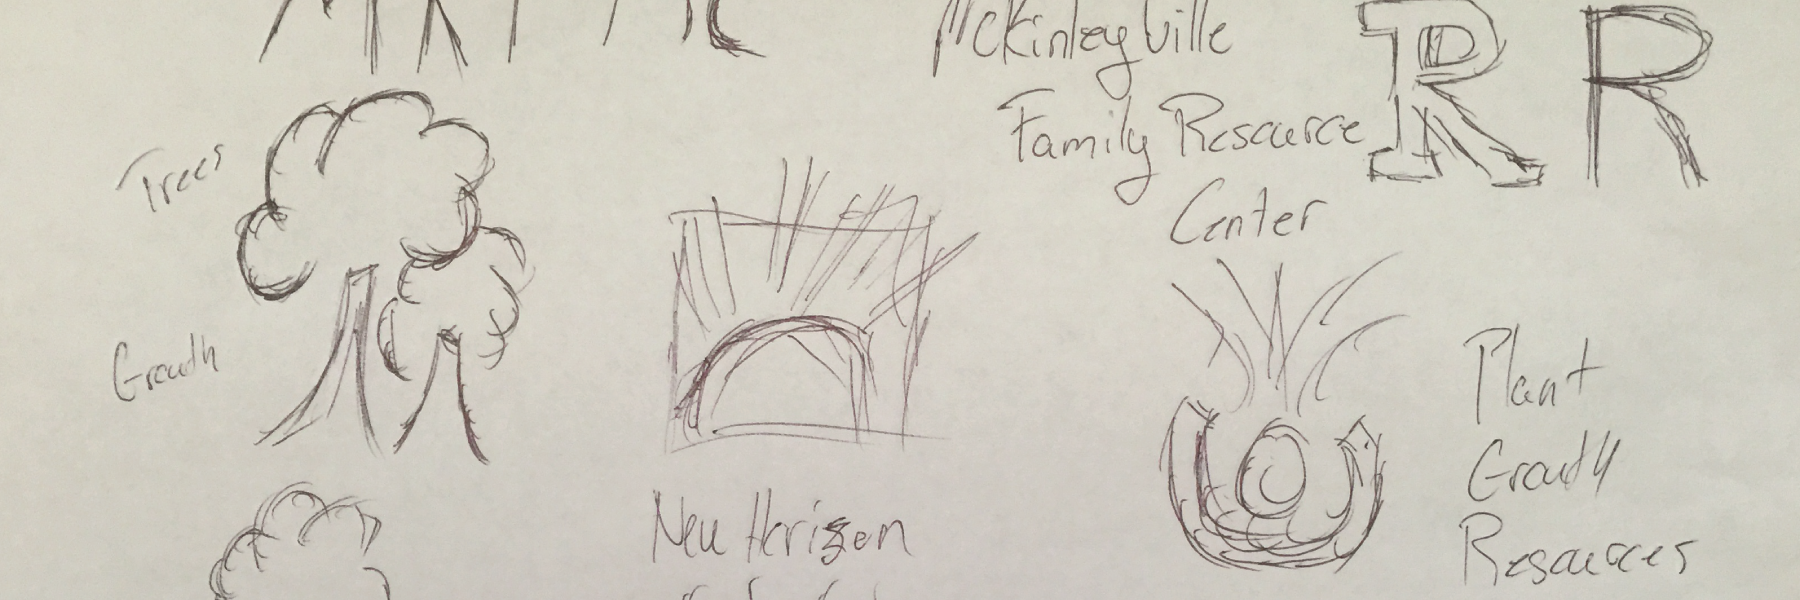 sketches for logo of McKinleyville Family Resource Center